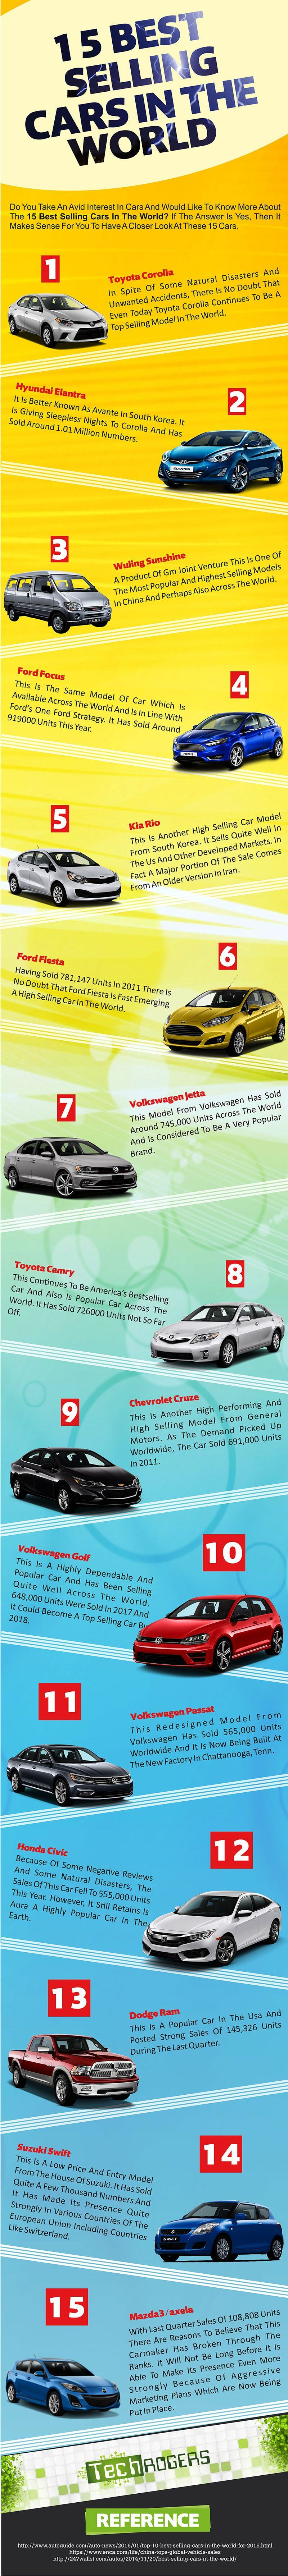 15 Best Selling Cars in the World [Infographic]